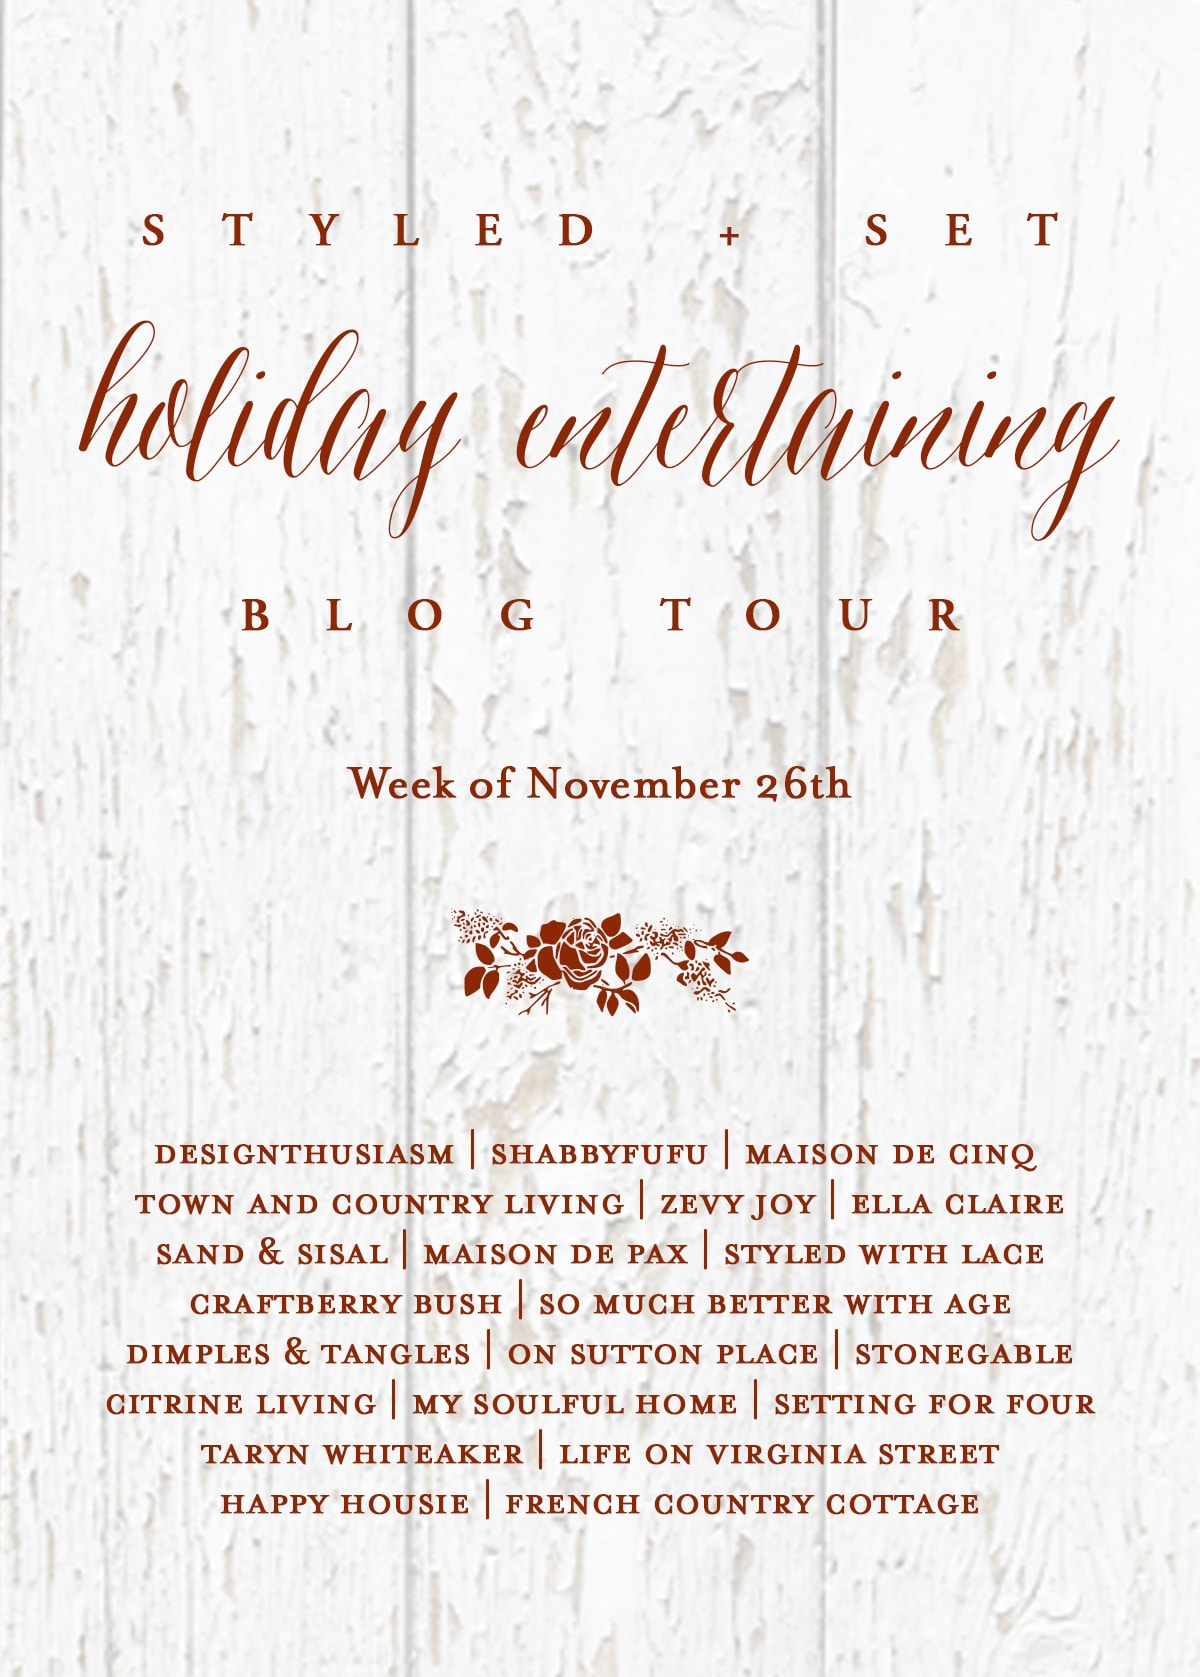 See 21 design blogger's Christmas homes and entertaining ideas in this Styled & Set Holiday Entertaining Blog tour! #christmas #christmasdecor #holidaydecor #entertaining #blogger #hometour #xmasdecor